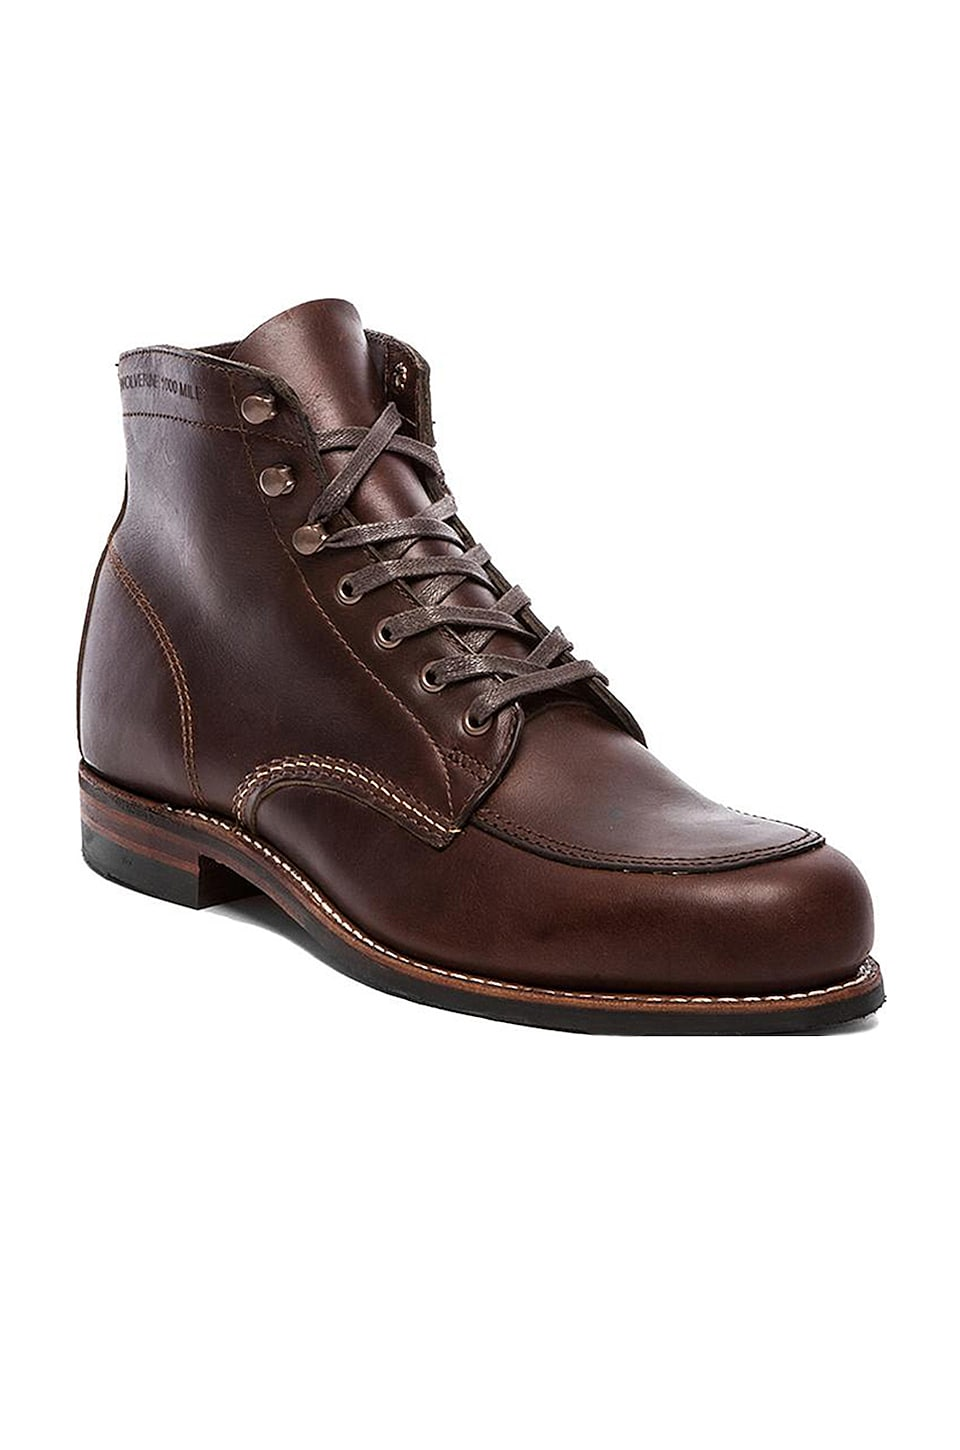 Wolverine Boots 1000 Mile Courtland en Marron